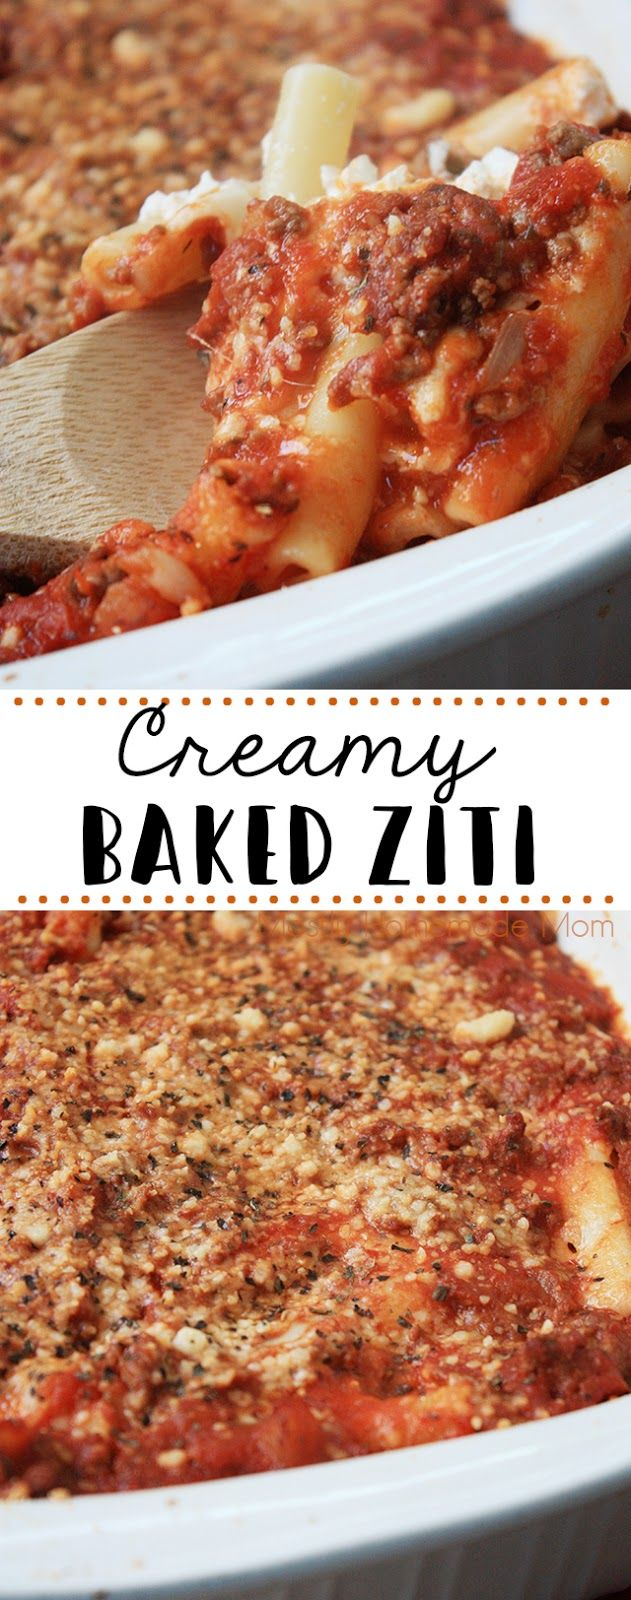 Creamy Baked Ziti - a total family favorite dinner! Layers of ziti pasta, meat sauce, mozzarella, provolone, and sour cream - absolutely delicious!